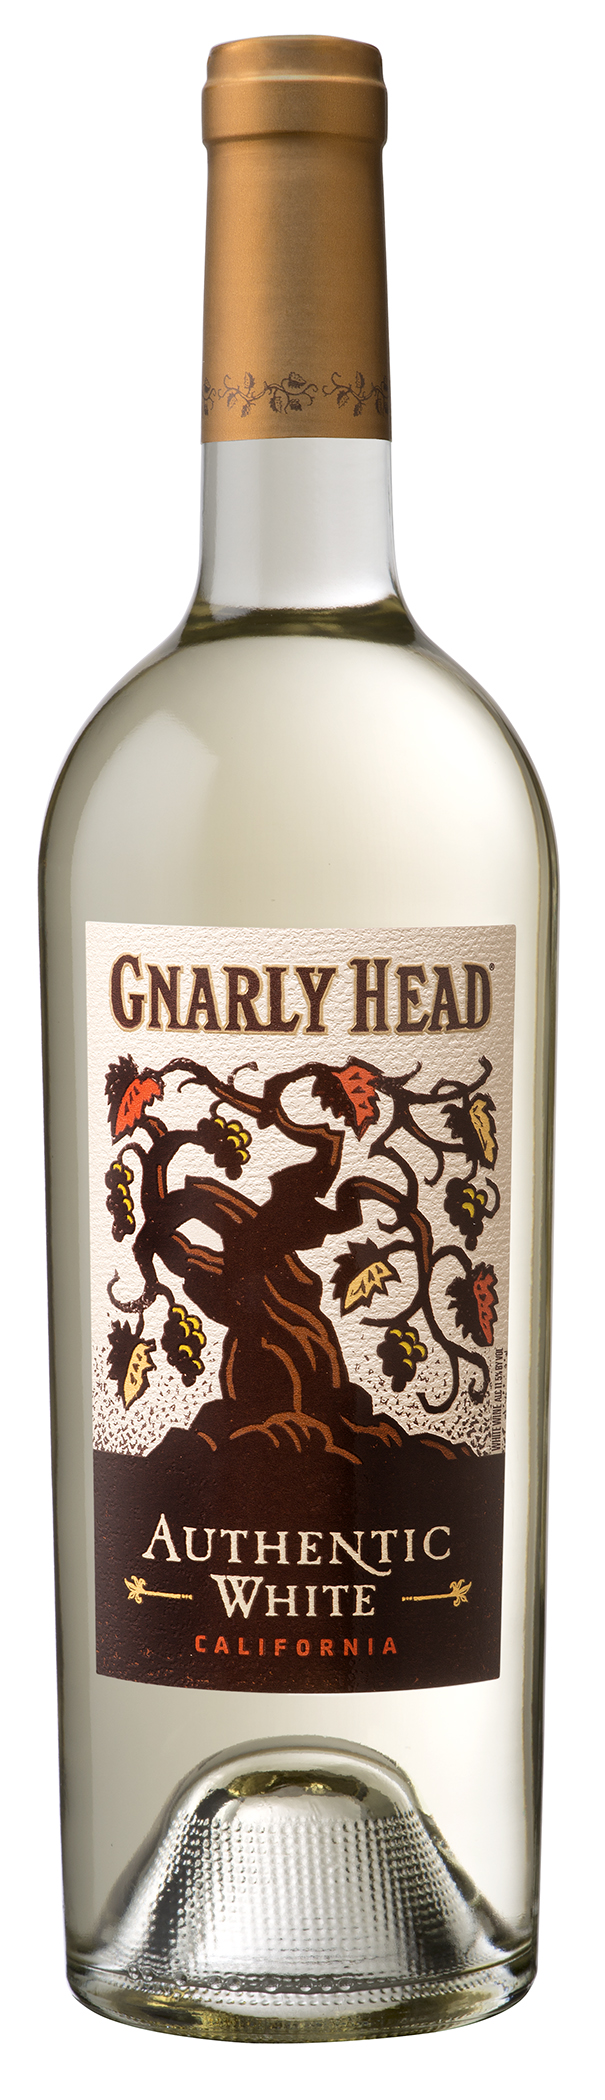 2011 Gnarly Head Authentic White California